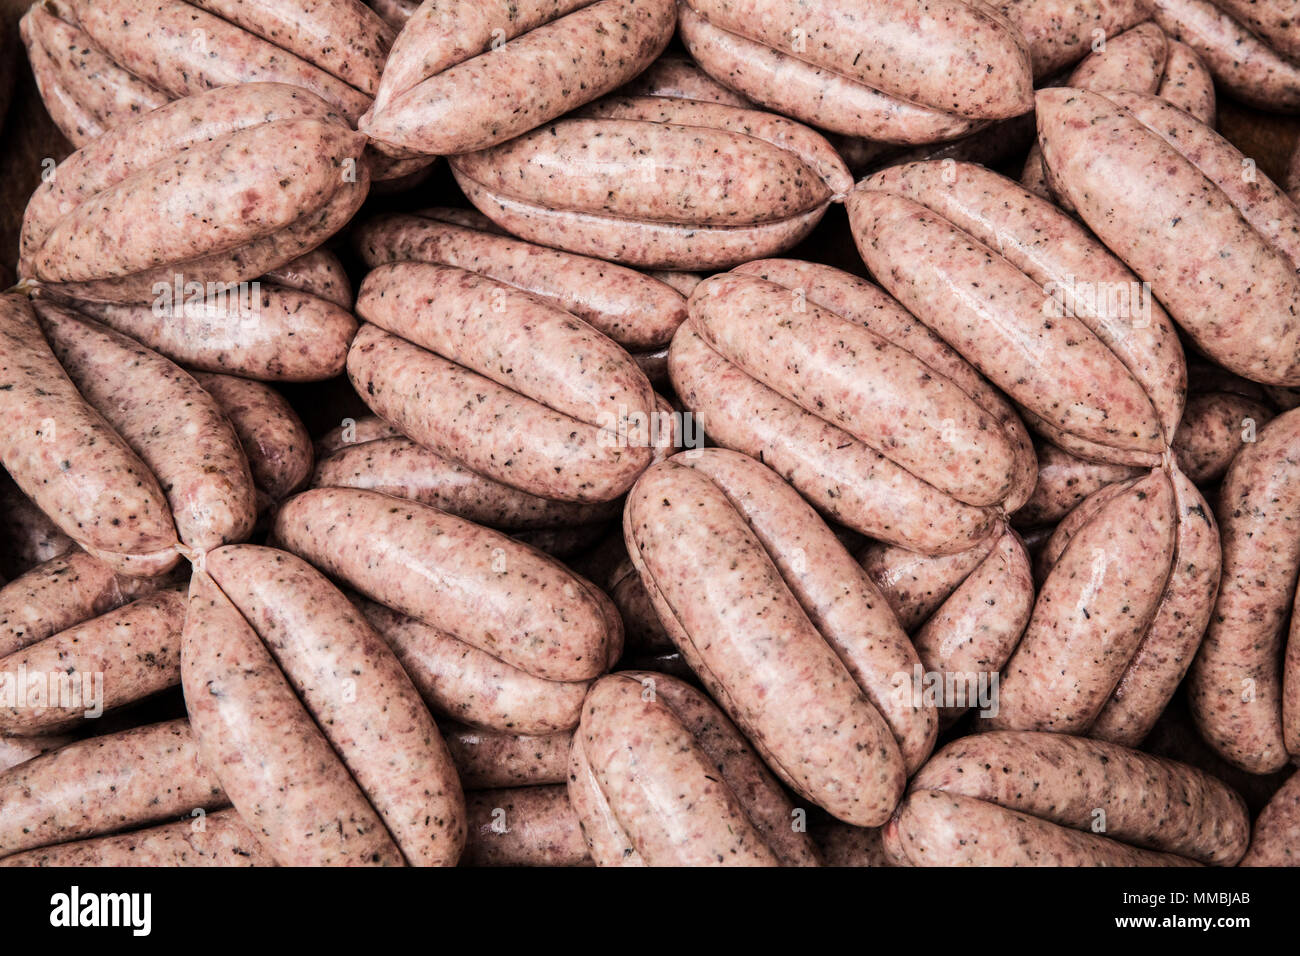 High angle close up of freshly made pork sausages at a butcher shop. - Stock Image